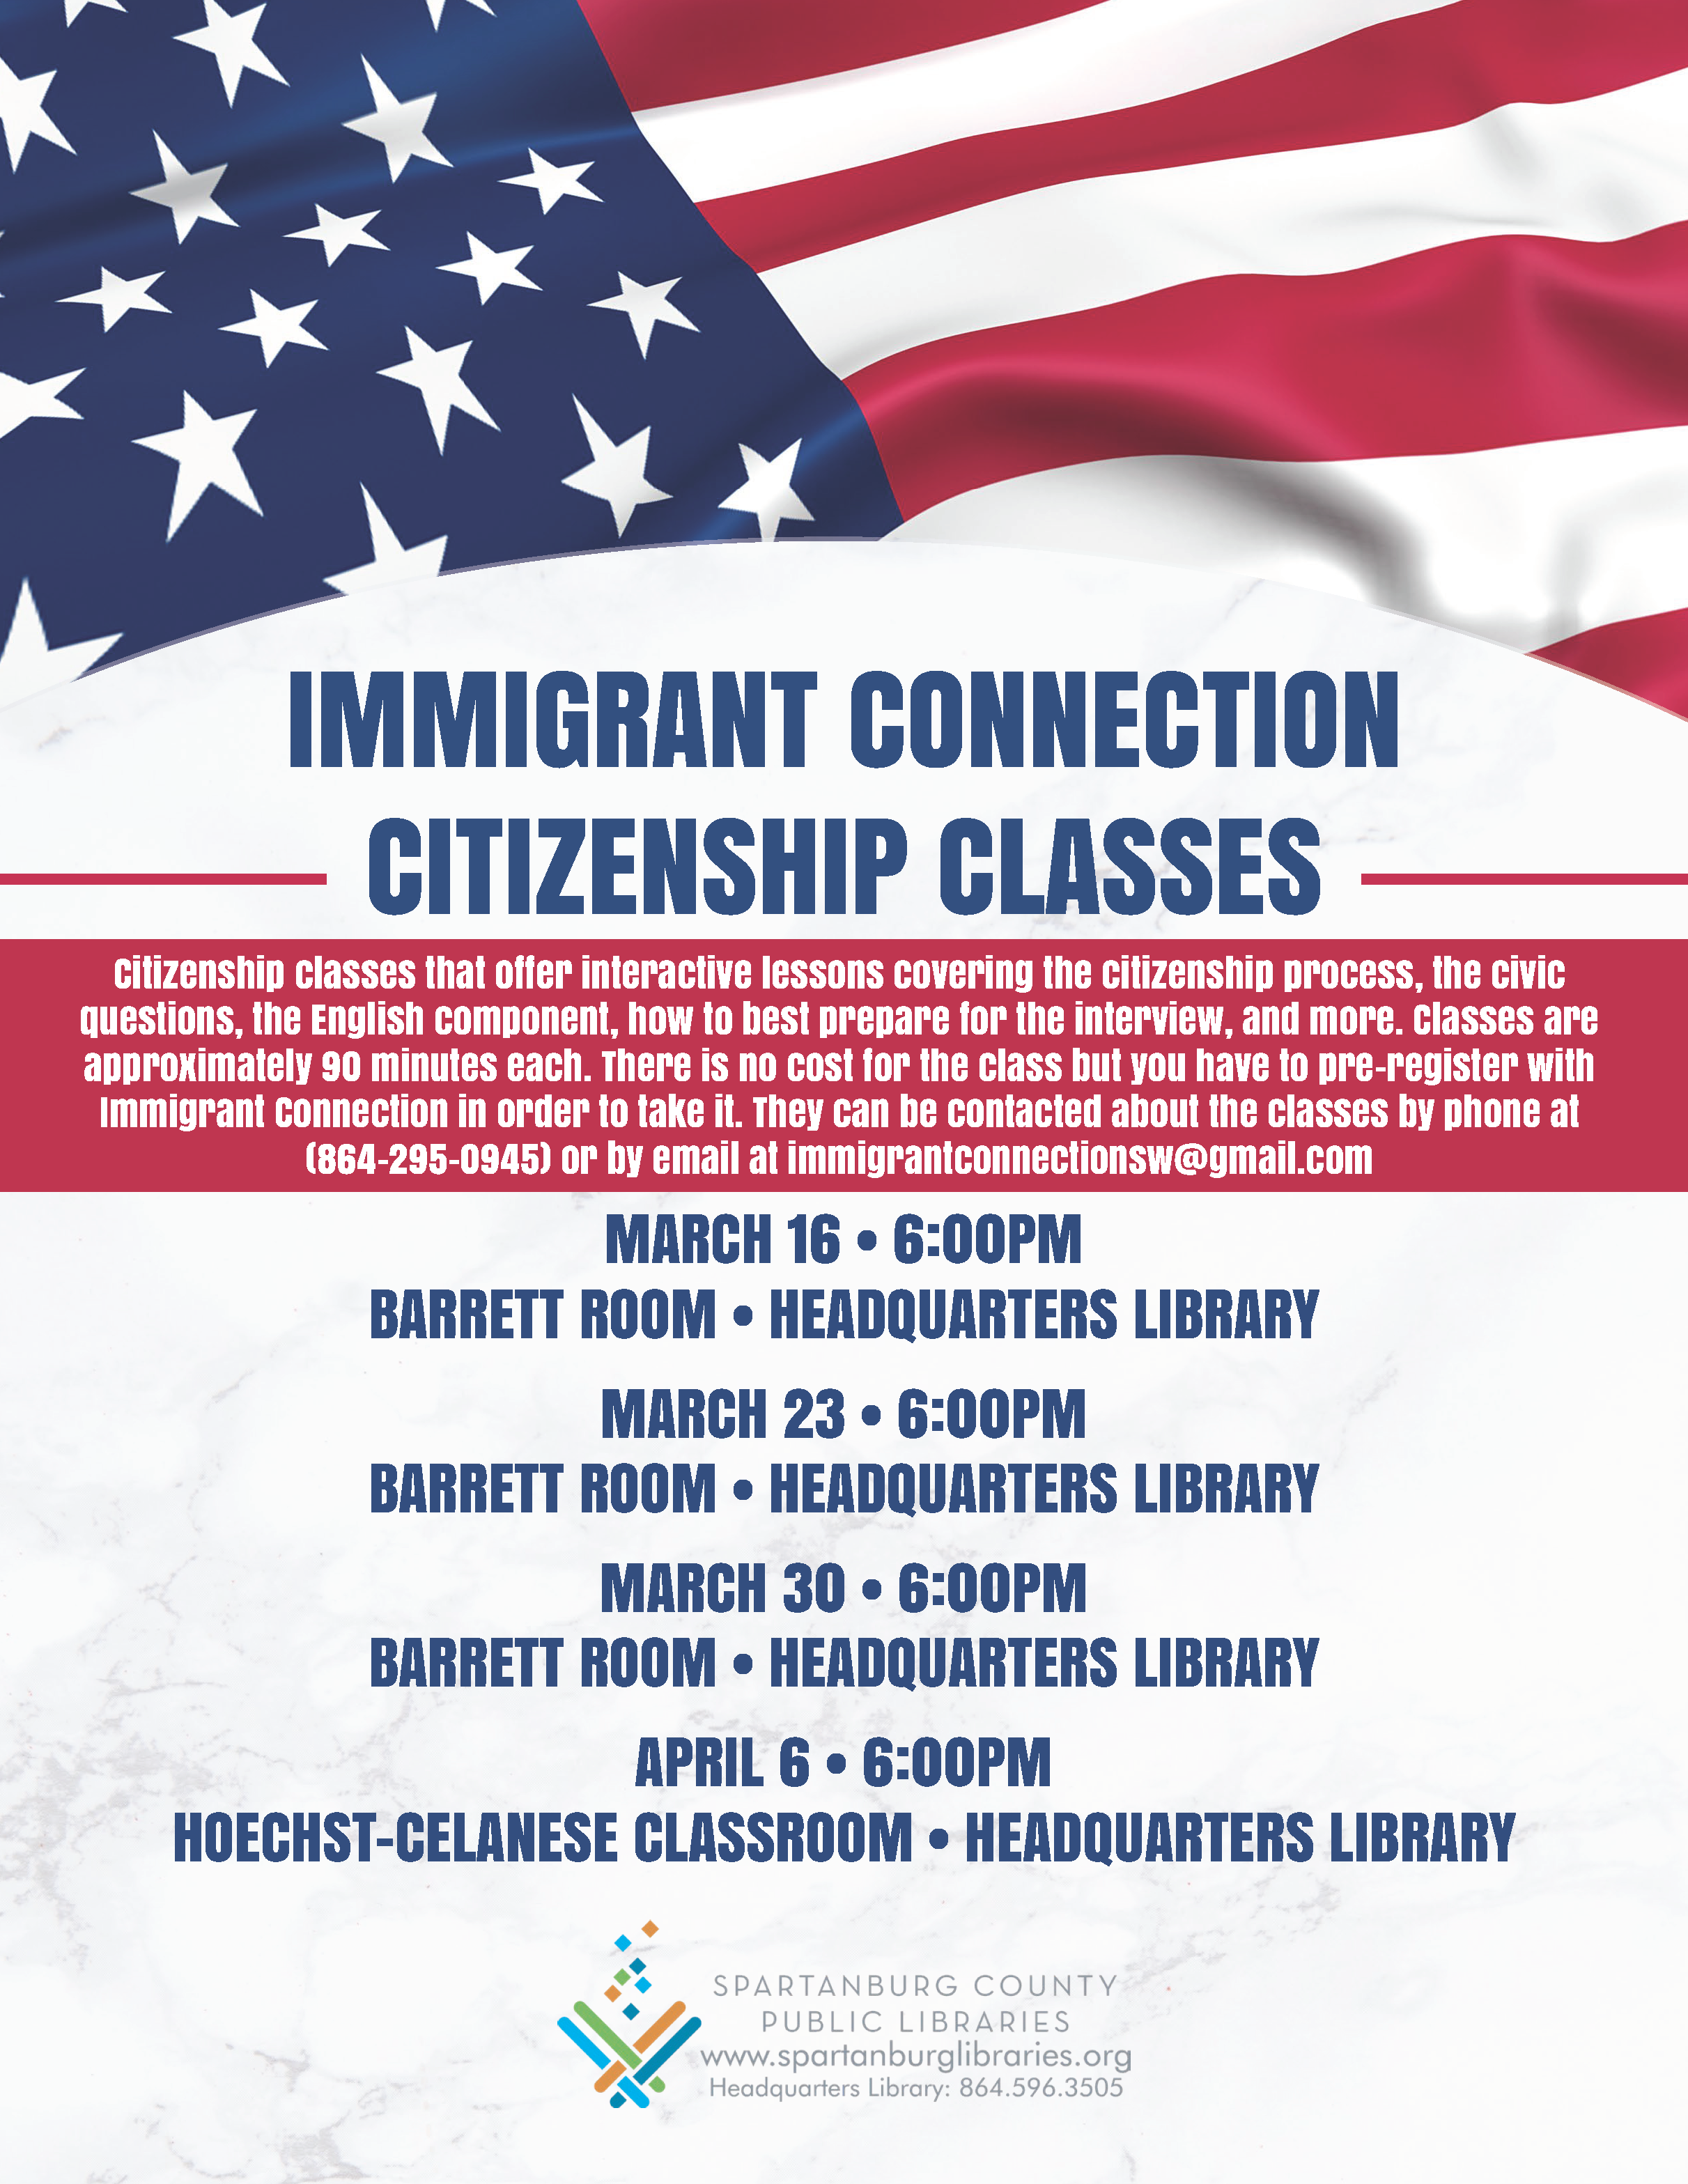 Immigrant Connection Citizenship Classes @ Spartanburg County Public Libraries